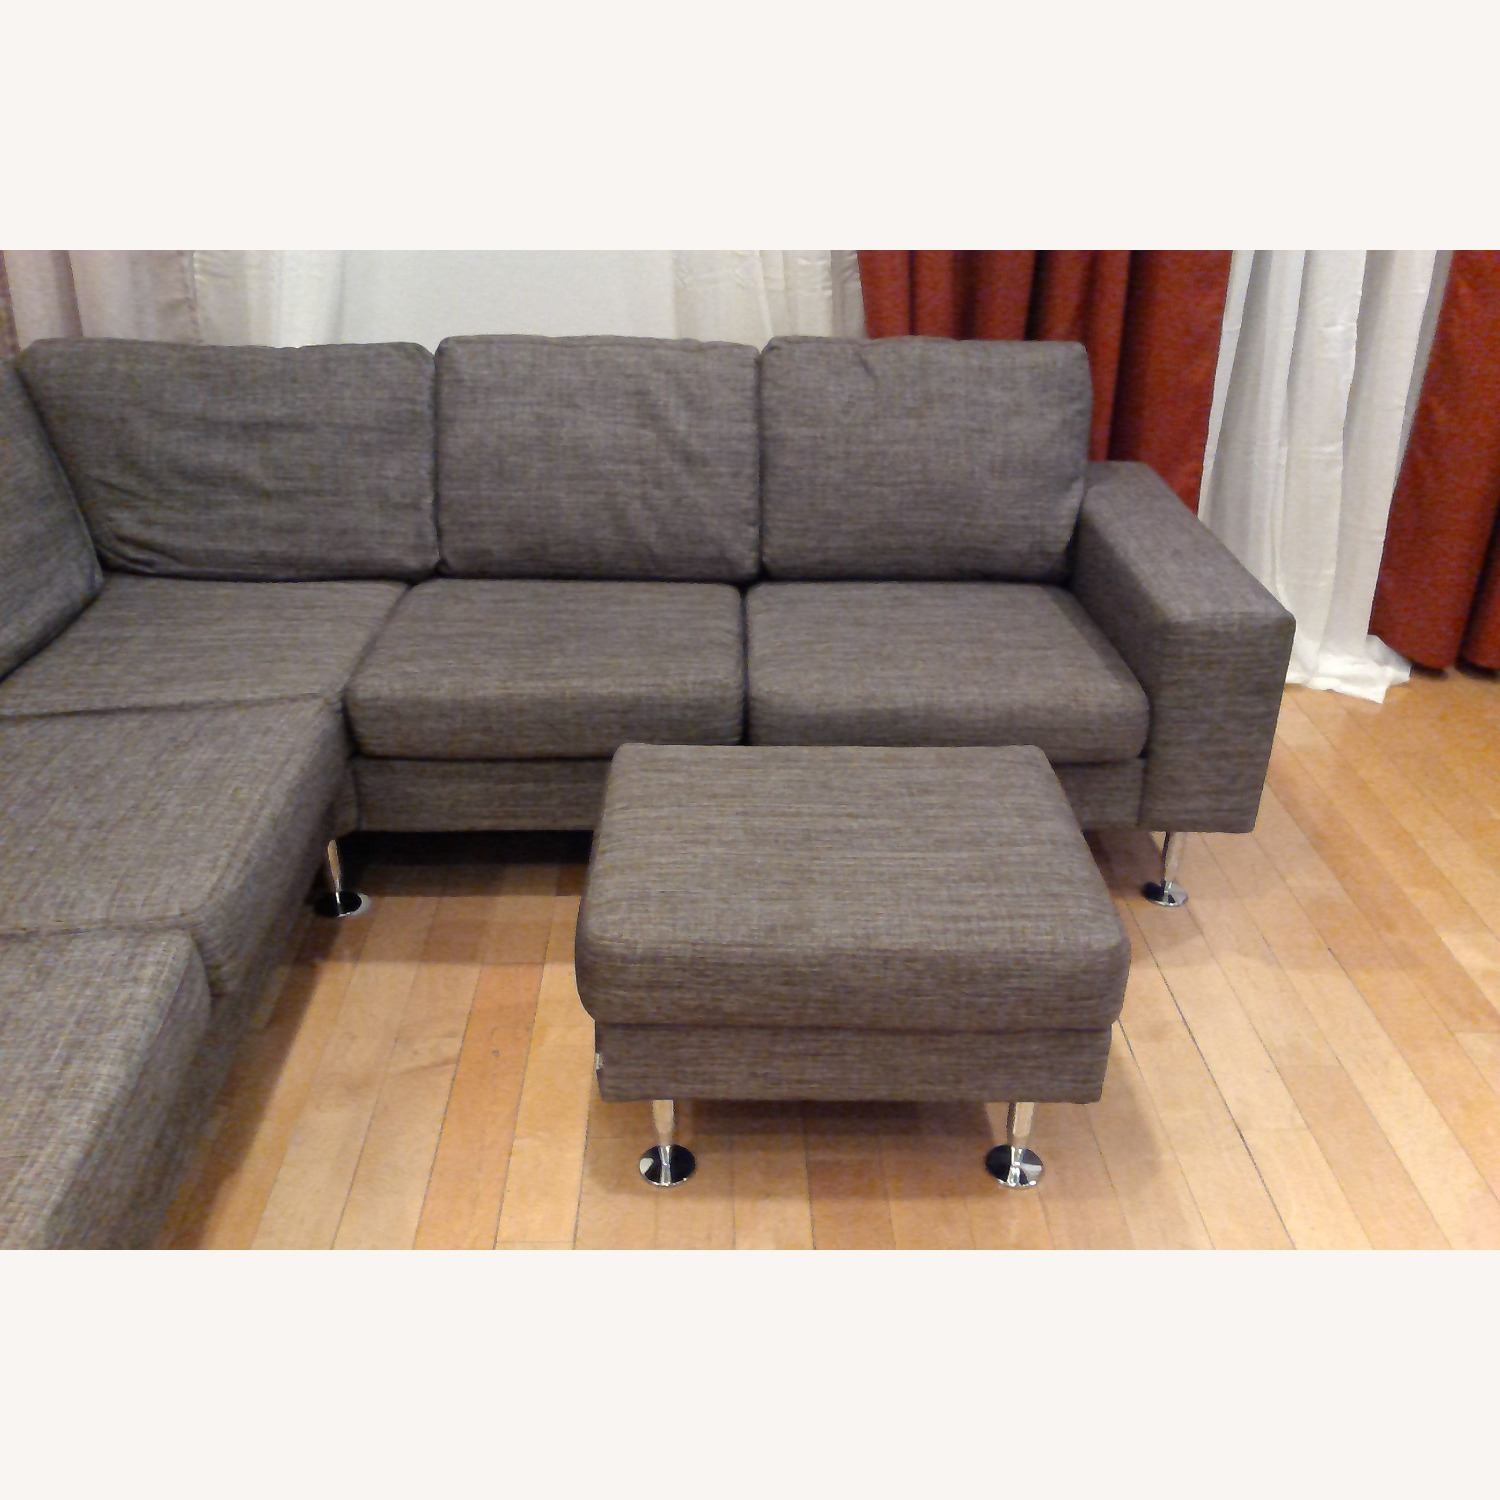 BoConcept 3 Piece Sectional Sofa with Ottoman - image-17